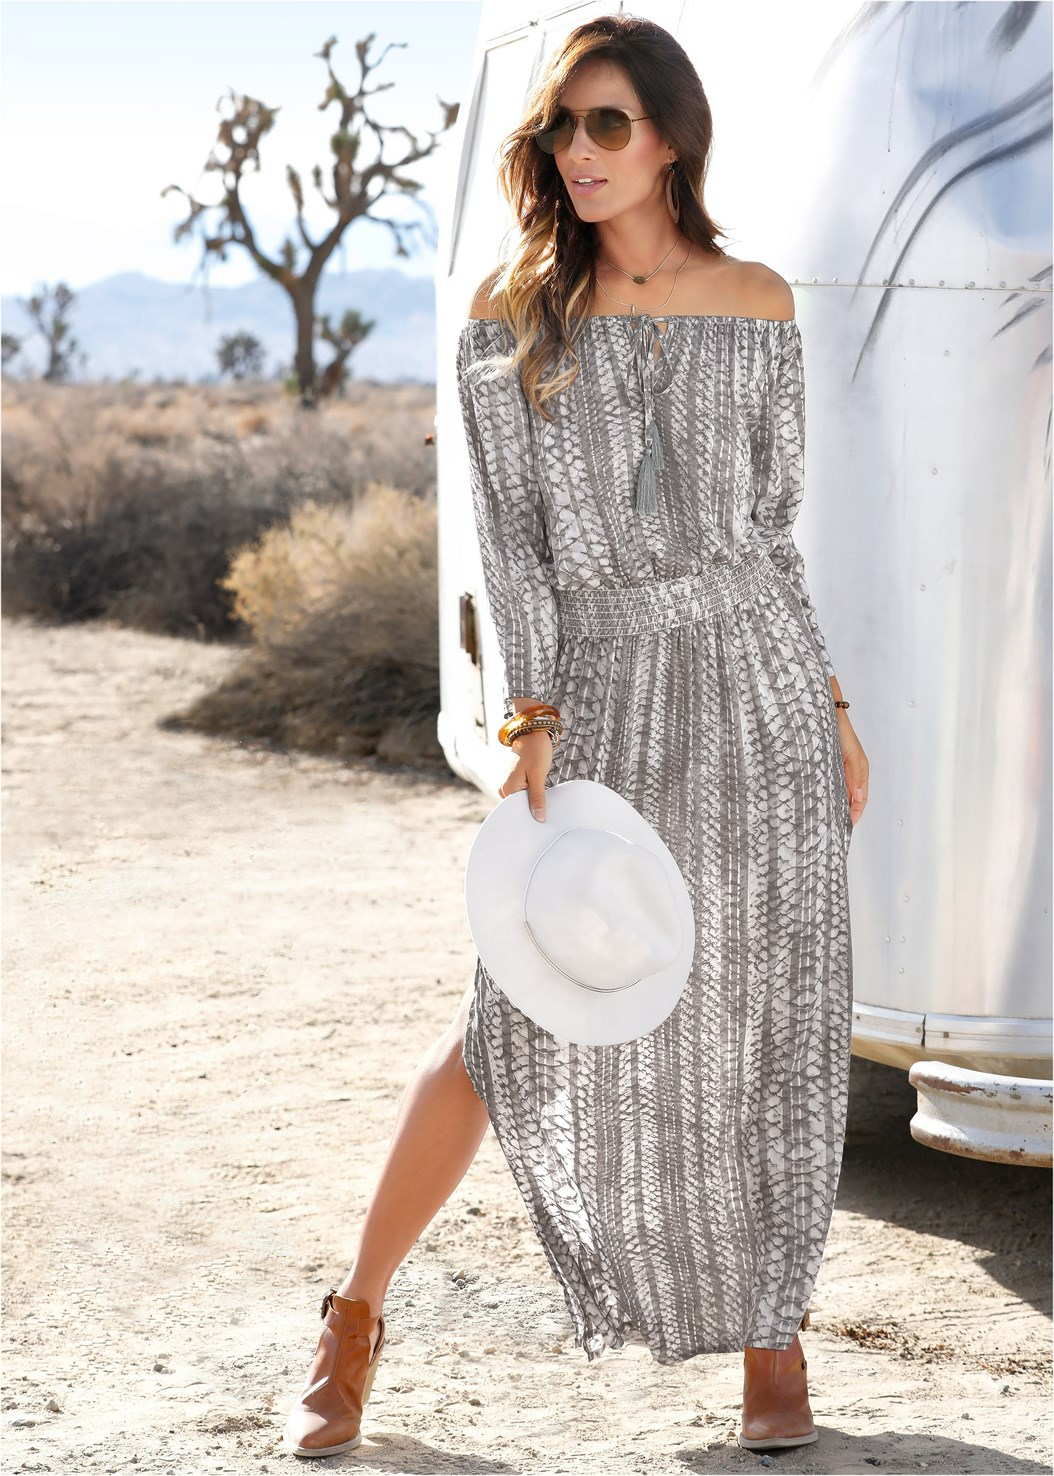 Python Printed Maxi Dress,Fringe Crossbody,Circular Straw Bag